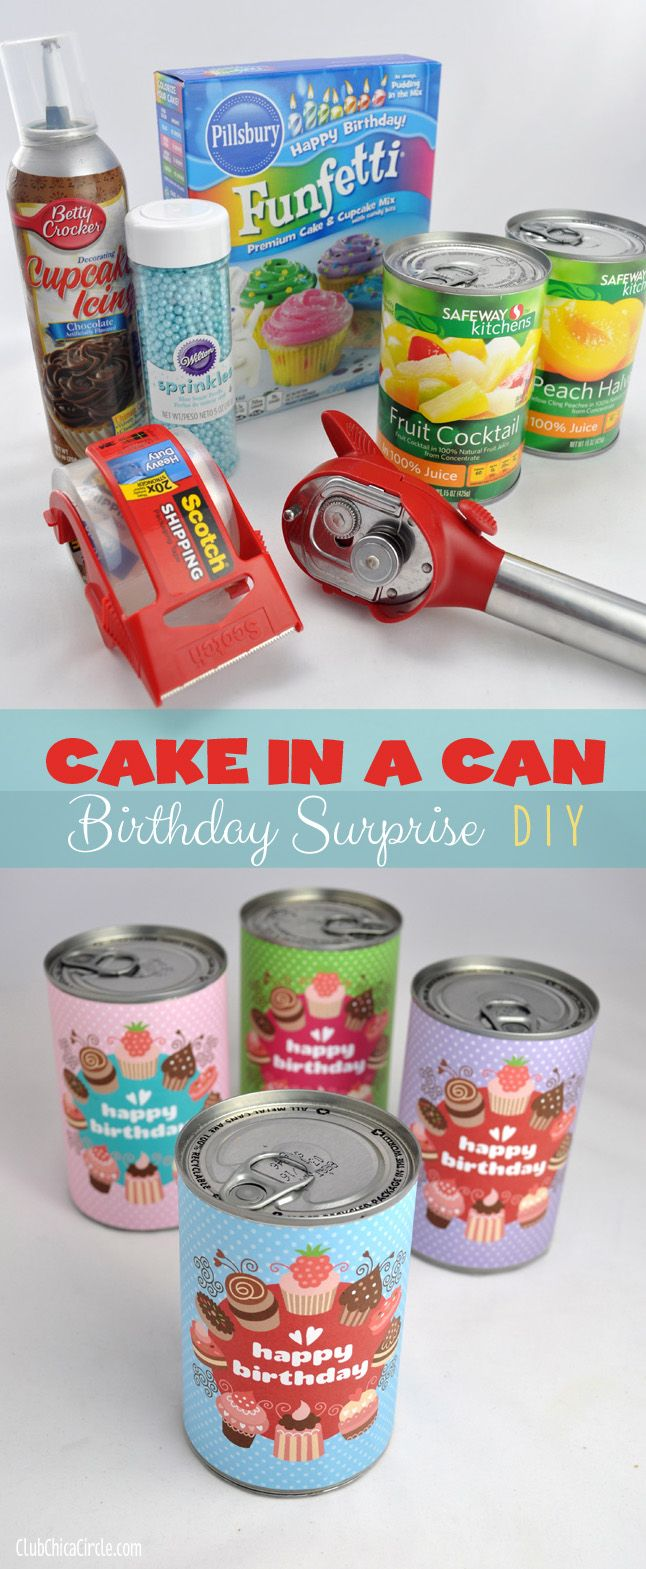 Cake in a Can Birthday Surprise DIY --> OMG I am totally trying this